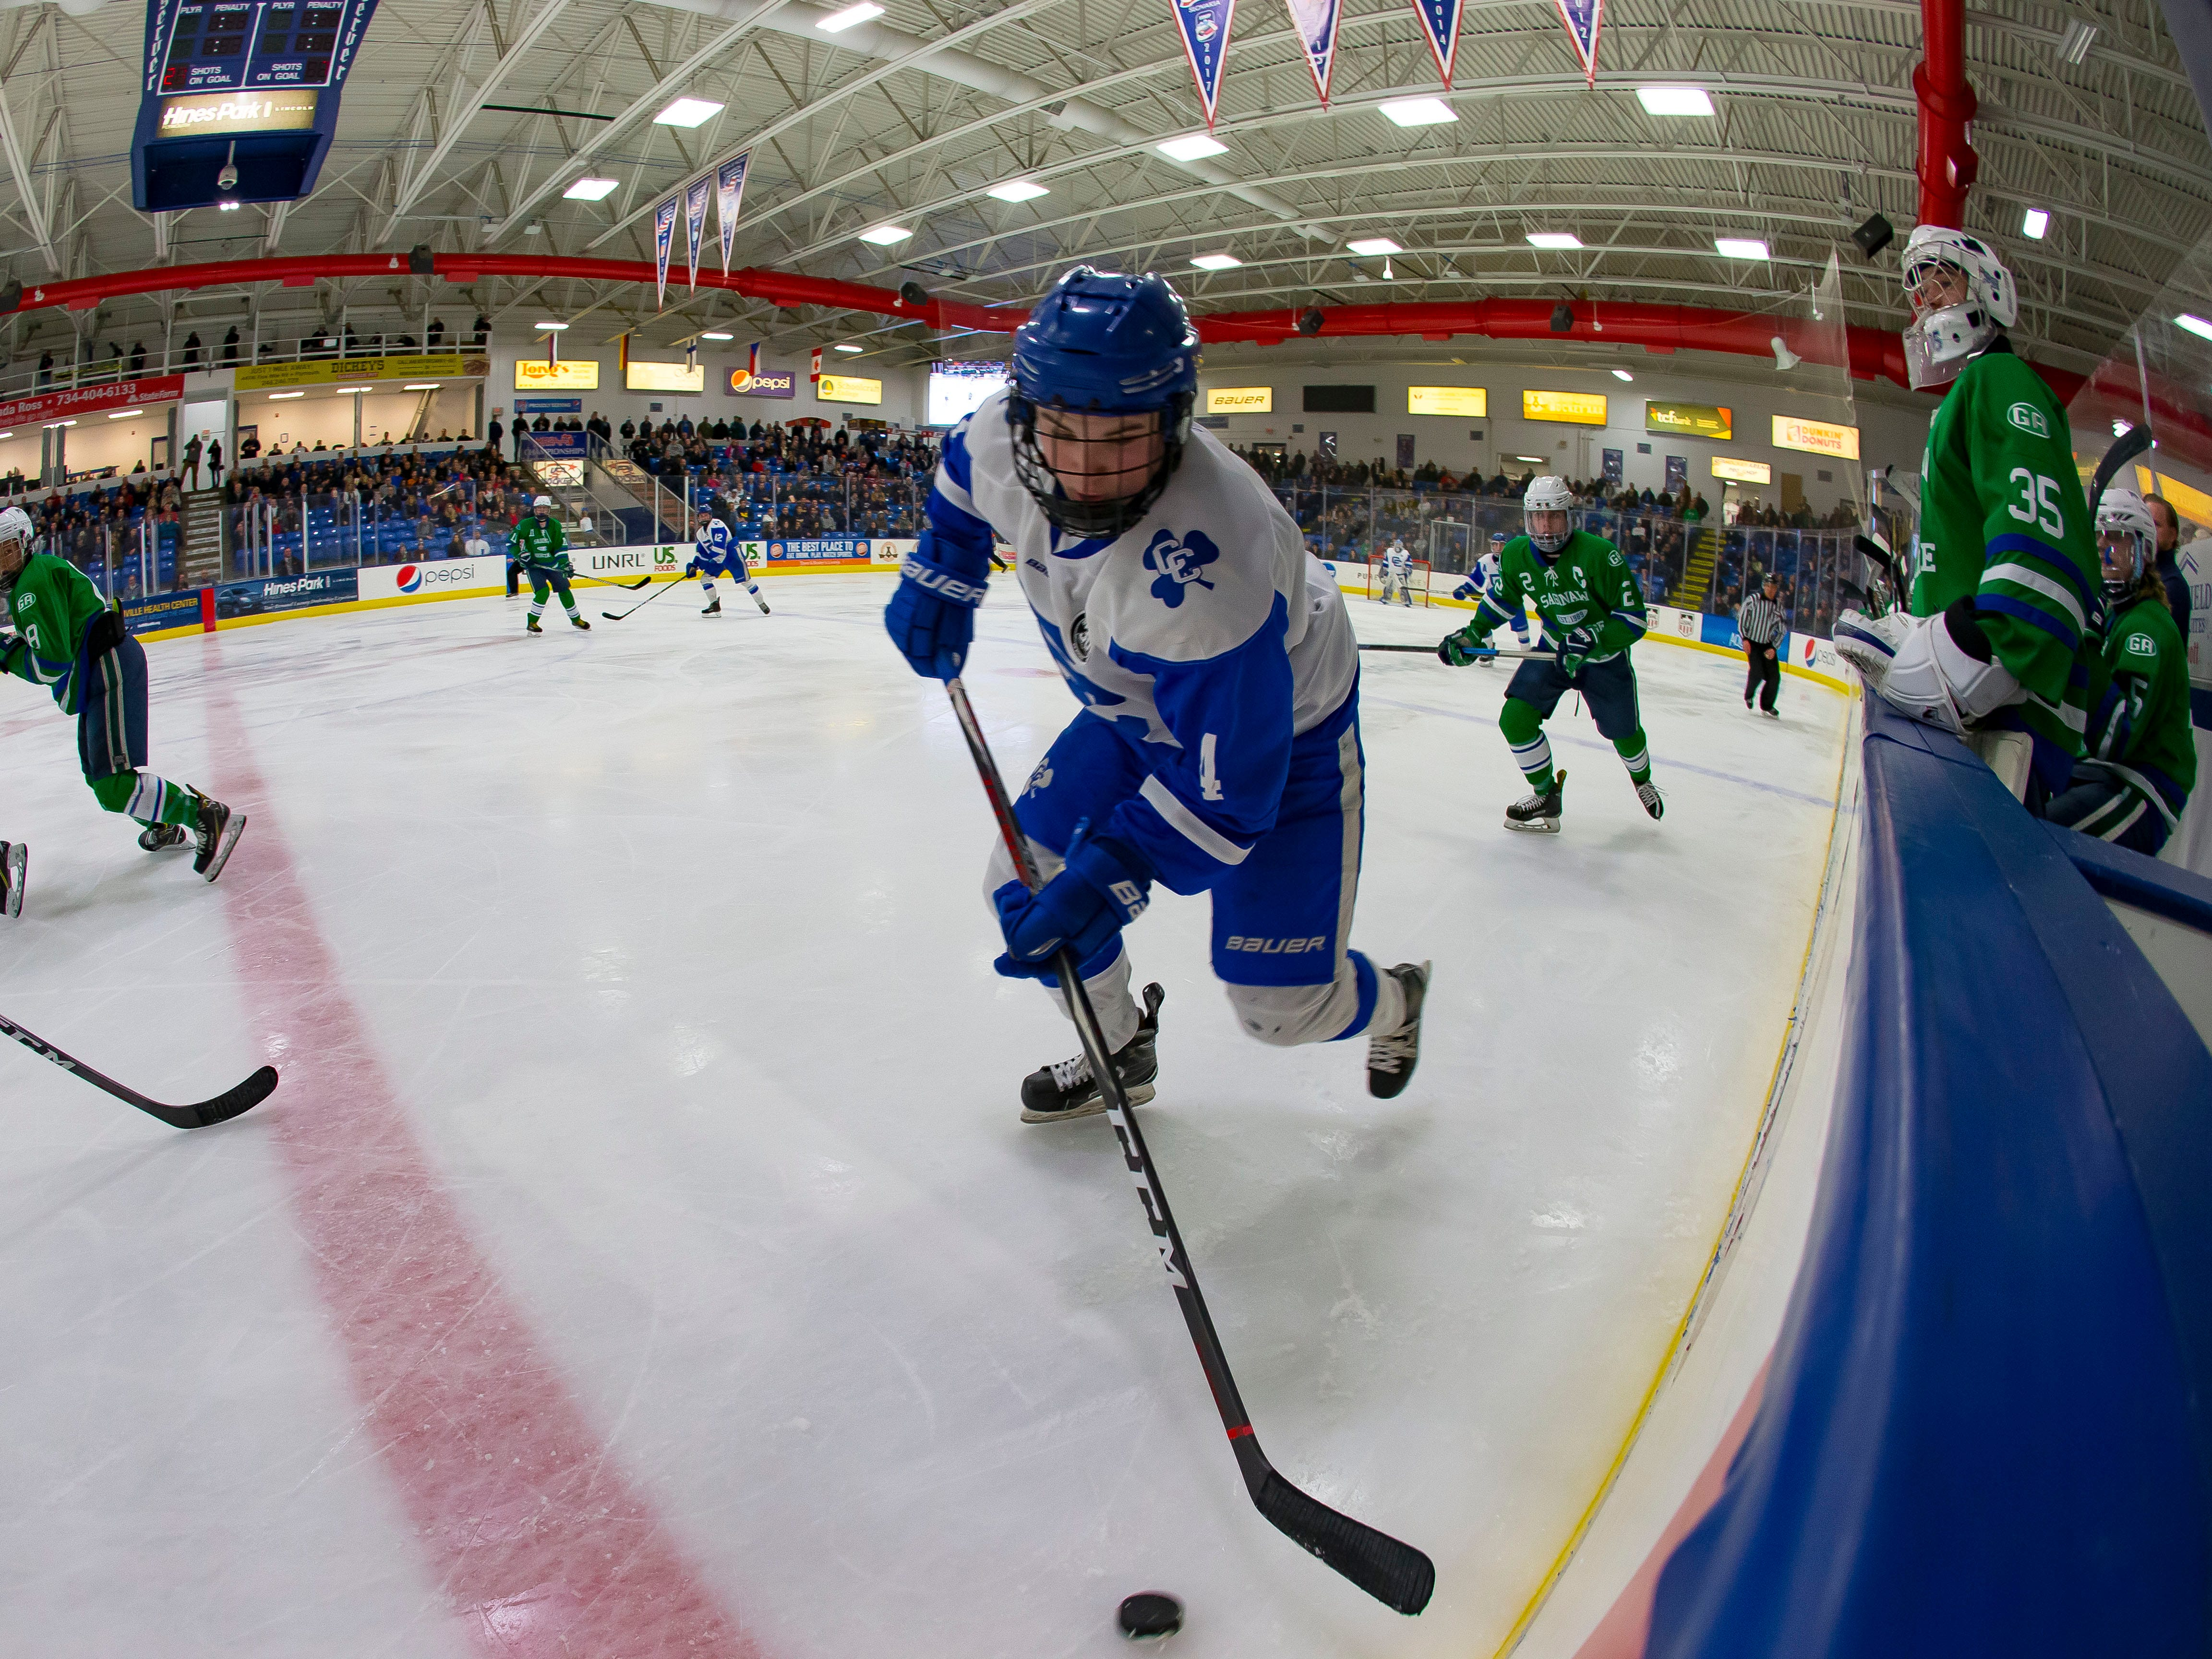 Justin Roe (4) of Catholic Central skates up ice with the puck against Saginaw Heritage during the second period.